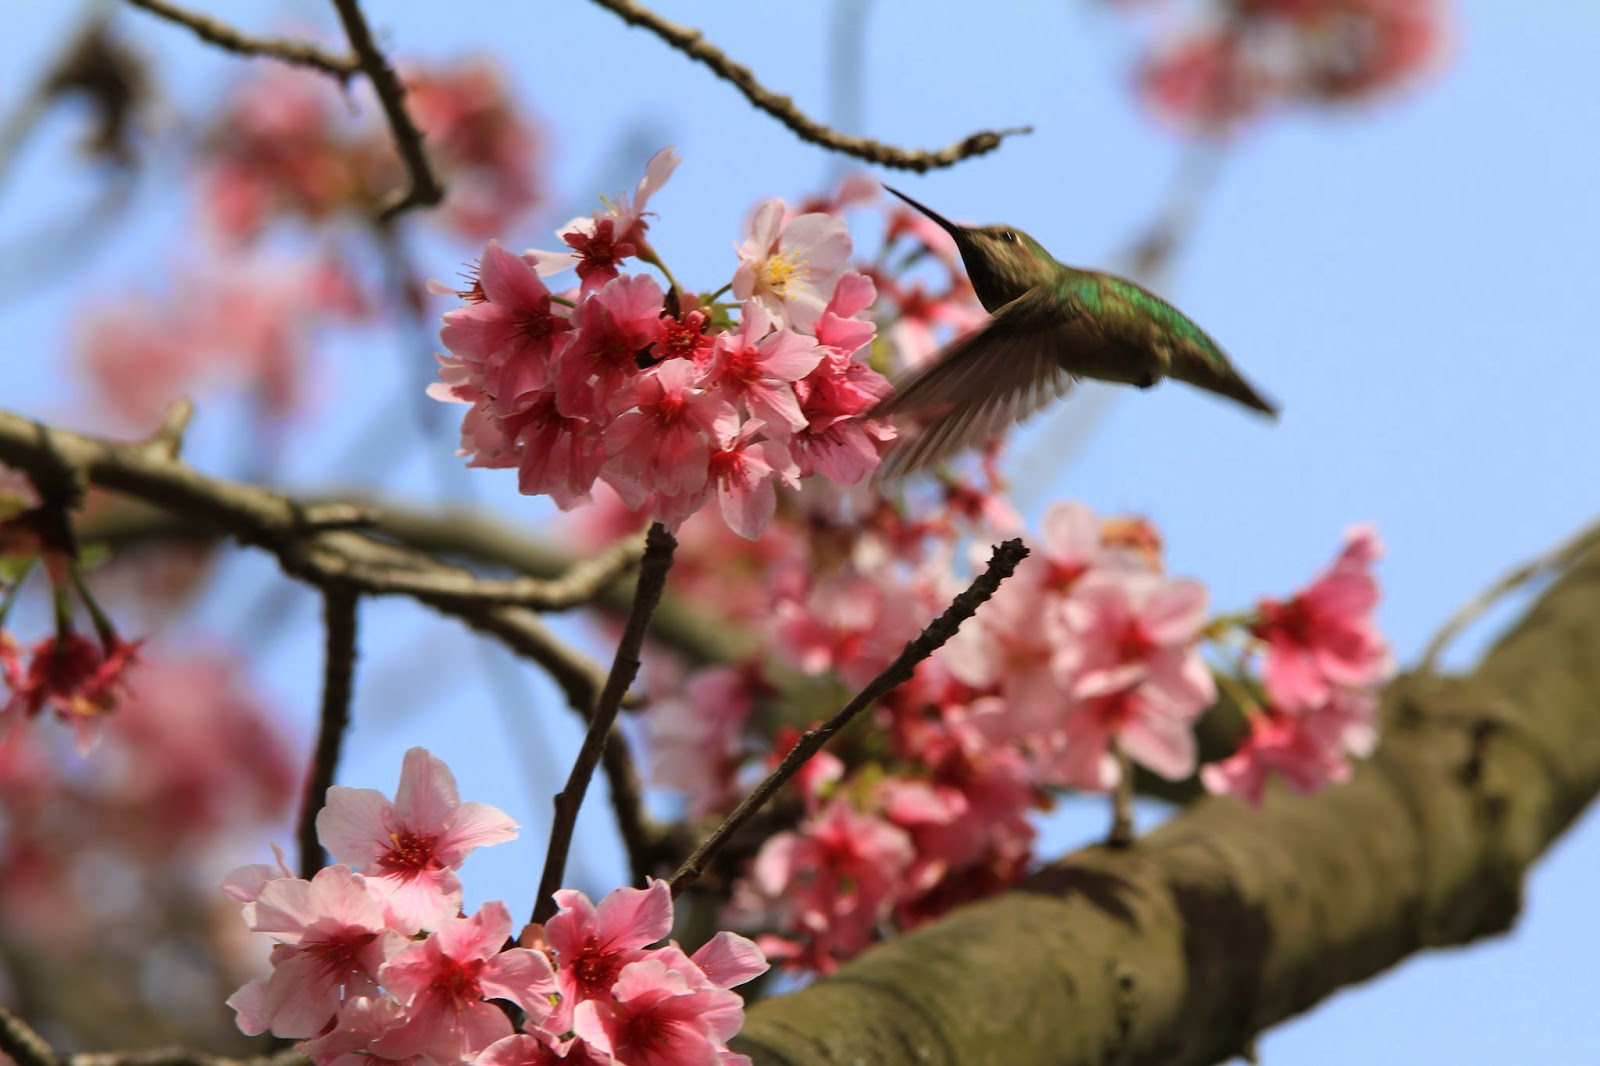 RIGHT A Small Feathered Visitor Joined The Days Hanami Making Feast Of Blossoms Date For Huntington Beach Sister Citys Cherry Blossom